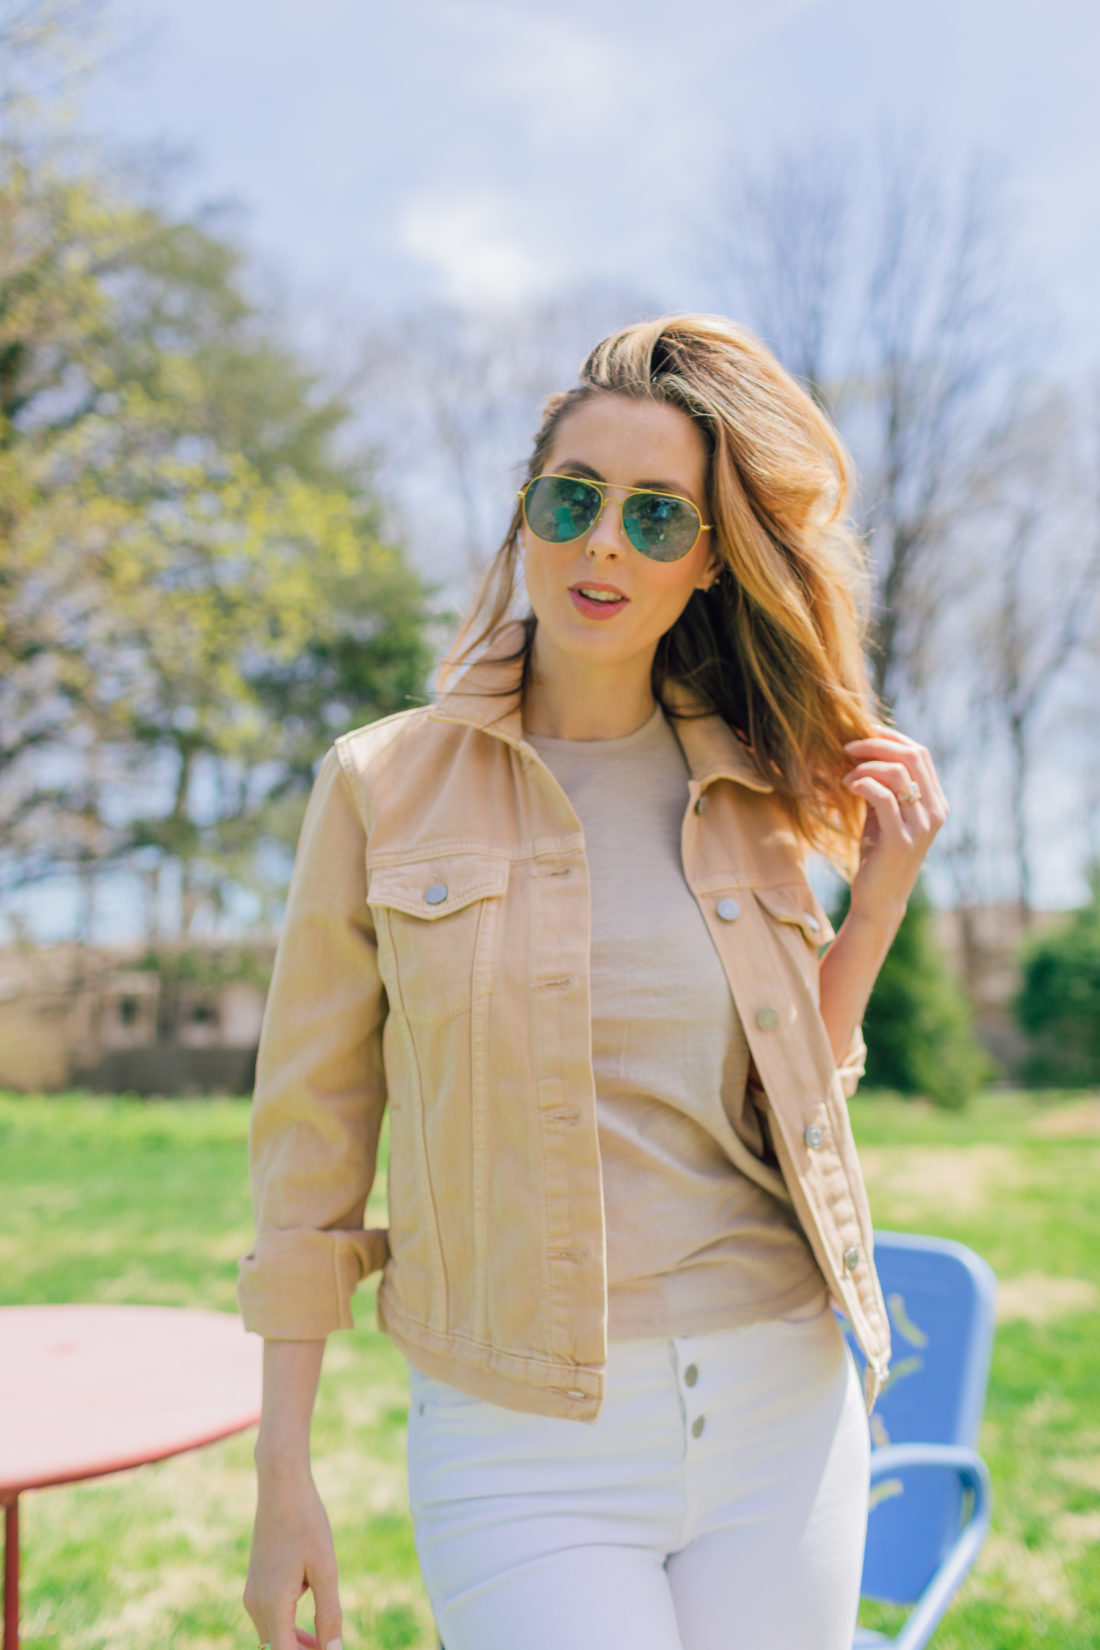 Eva Amurri Martino of Happily Eva After stands in her garden and shares her favorite nude colored pieces for spring